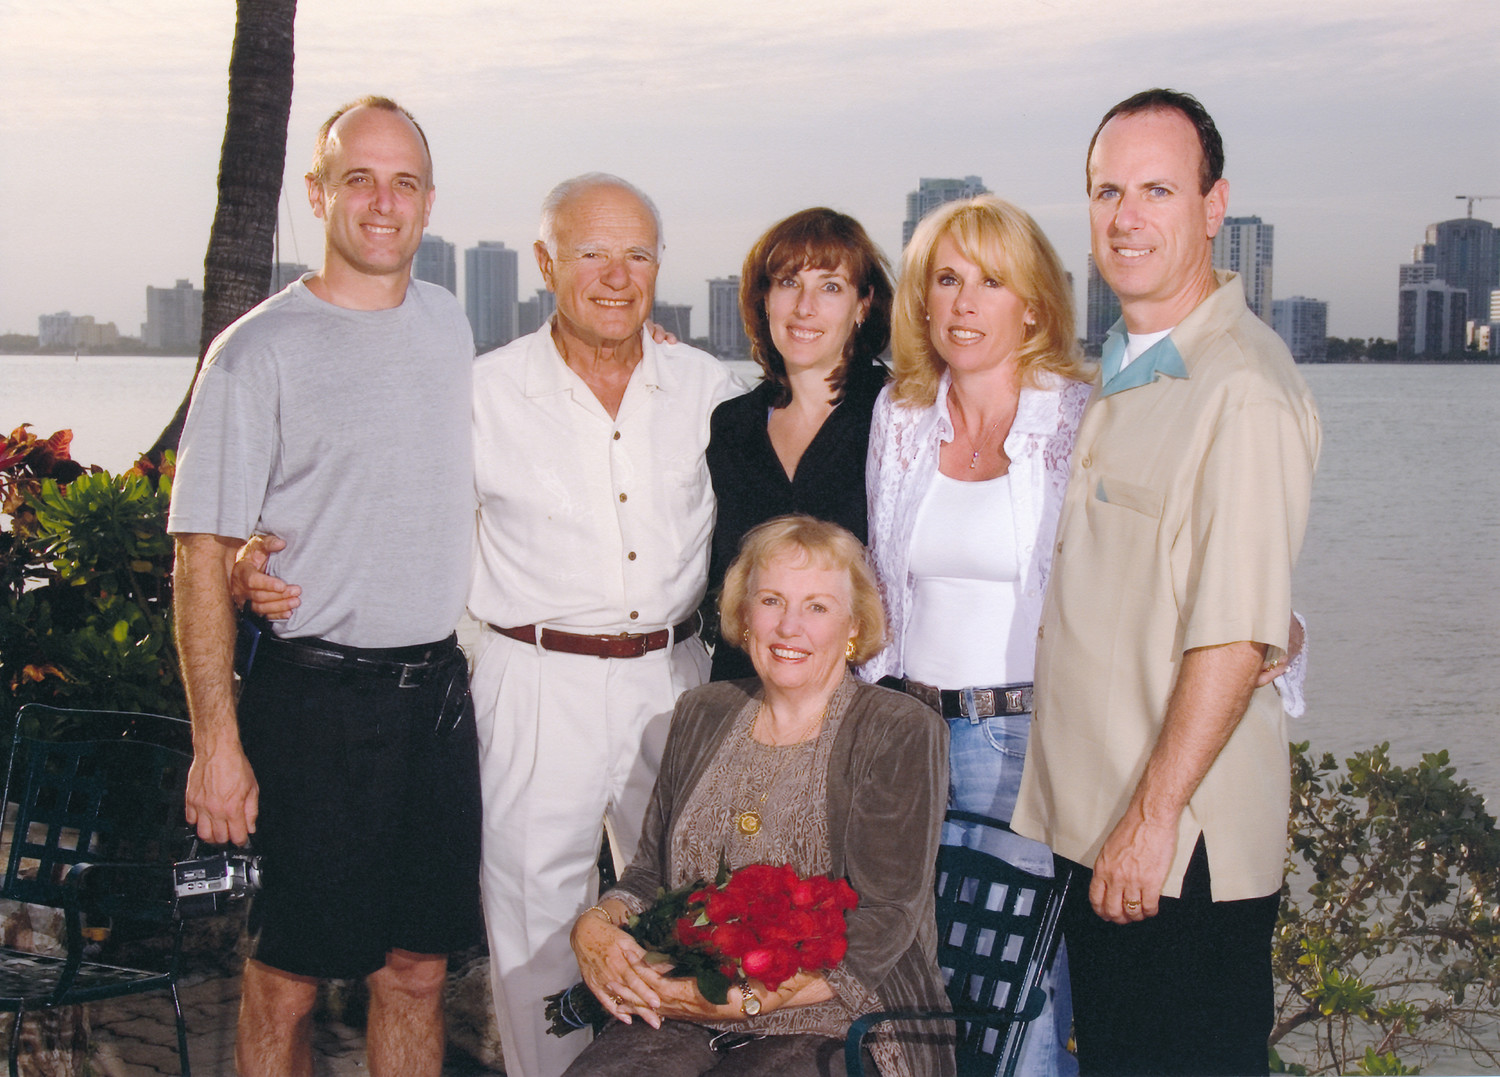 In 2005, clockwise from left, Jeff, Jack, Alisa, Susan, Bobby and Sandra.